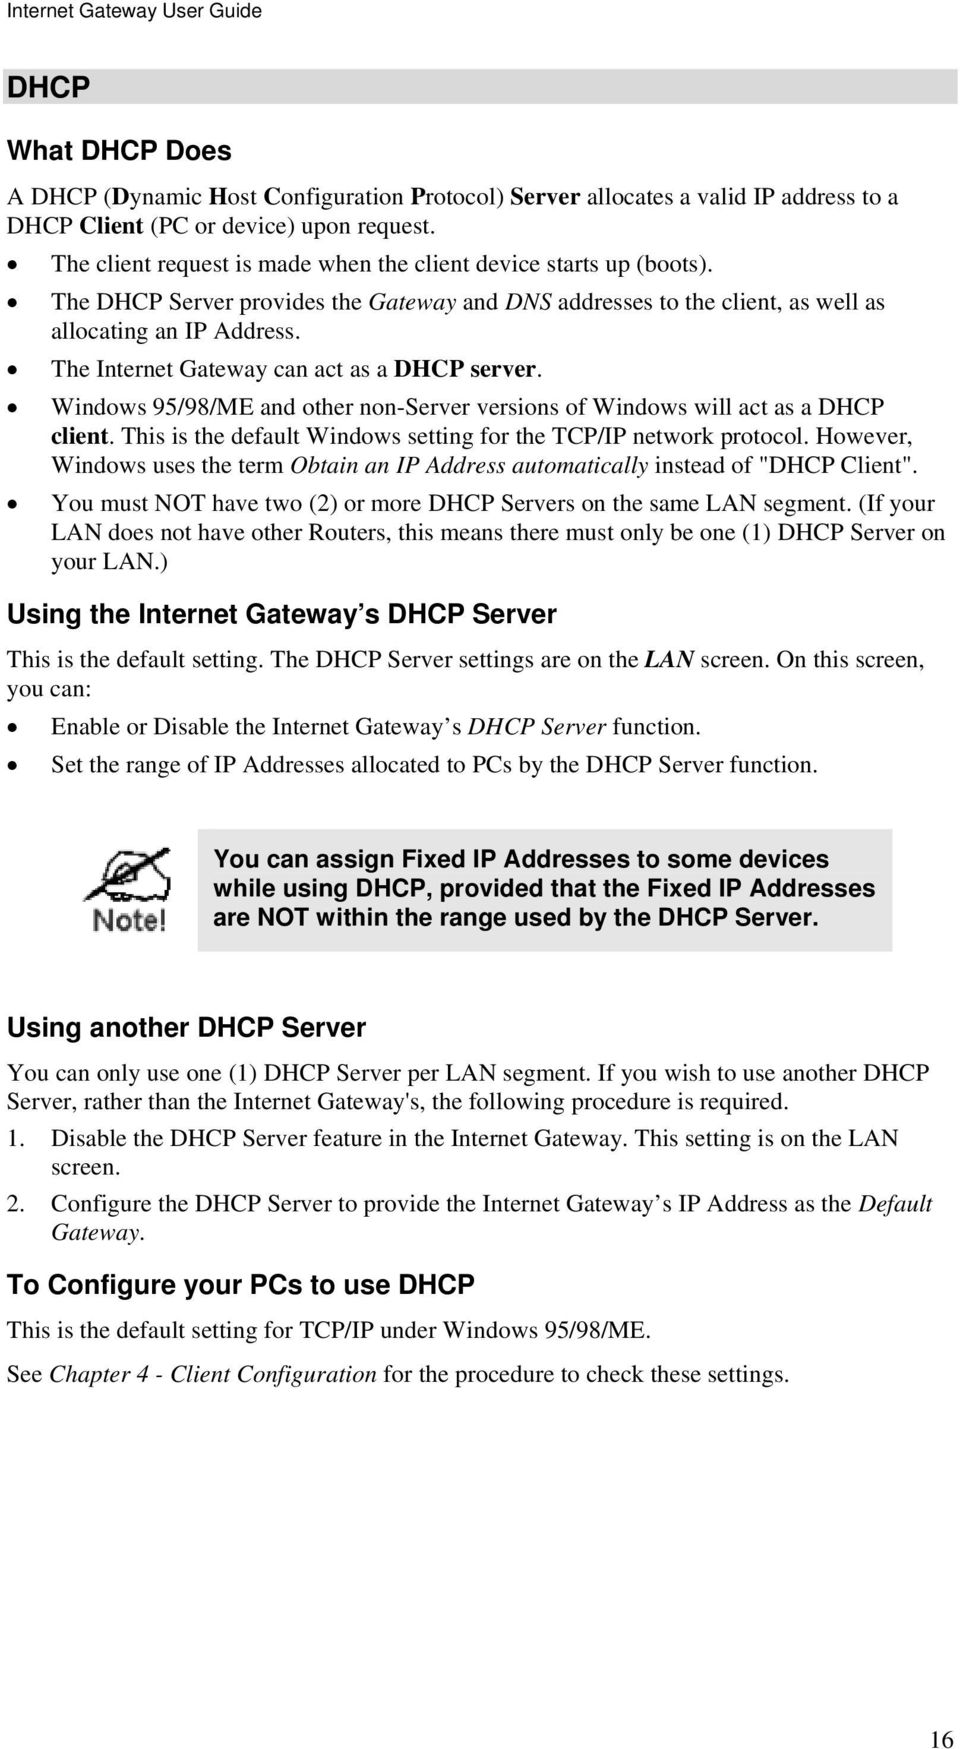 The Internet Gateway can act as a DHCP server. Windows 95/98/ME and other non-server versions of Windows will act as a DHCP client. This is the default Windows setting for the TCP/IP network protocol.